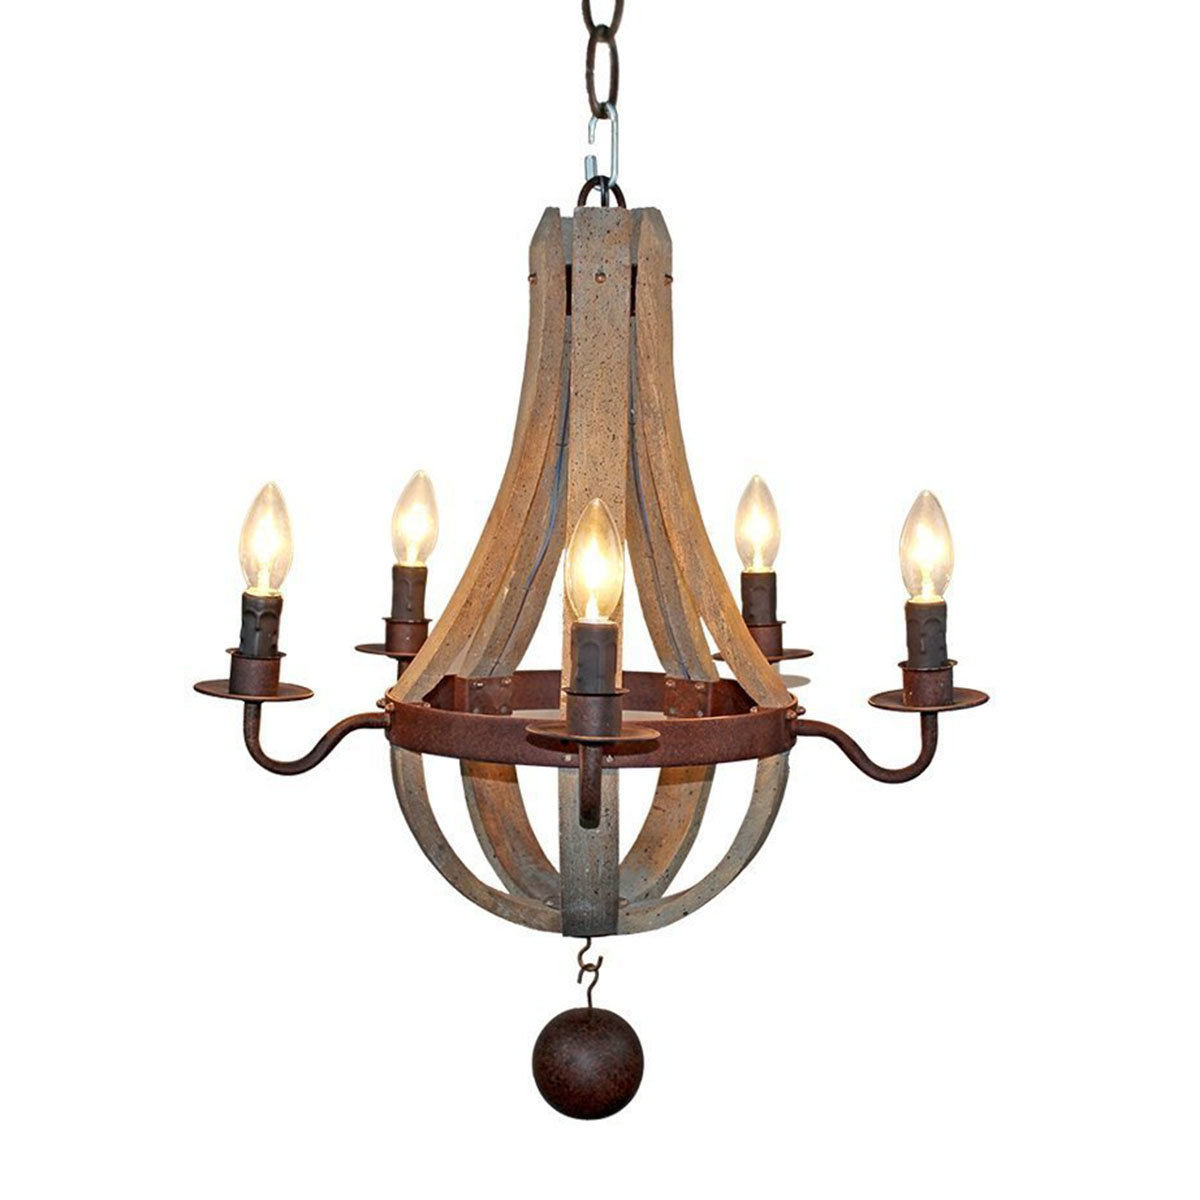 2020 Amata Flask Shape 5 Light Empire Chandelier With Kenna 5 Light Empire Chandeliers (View 15 of 25)